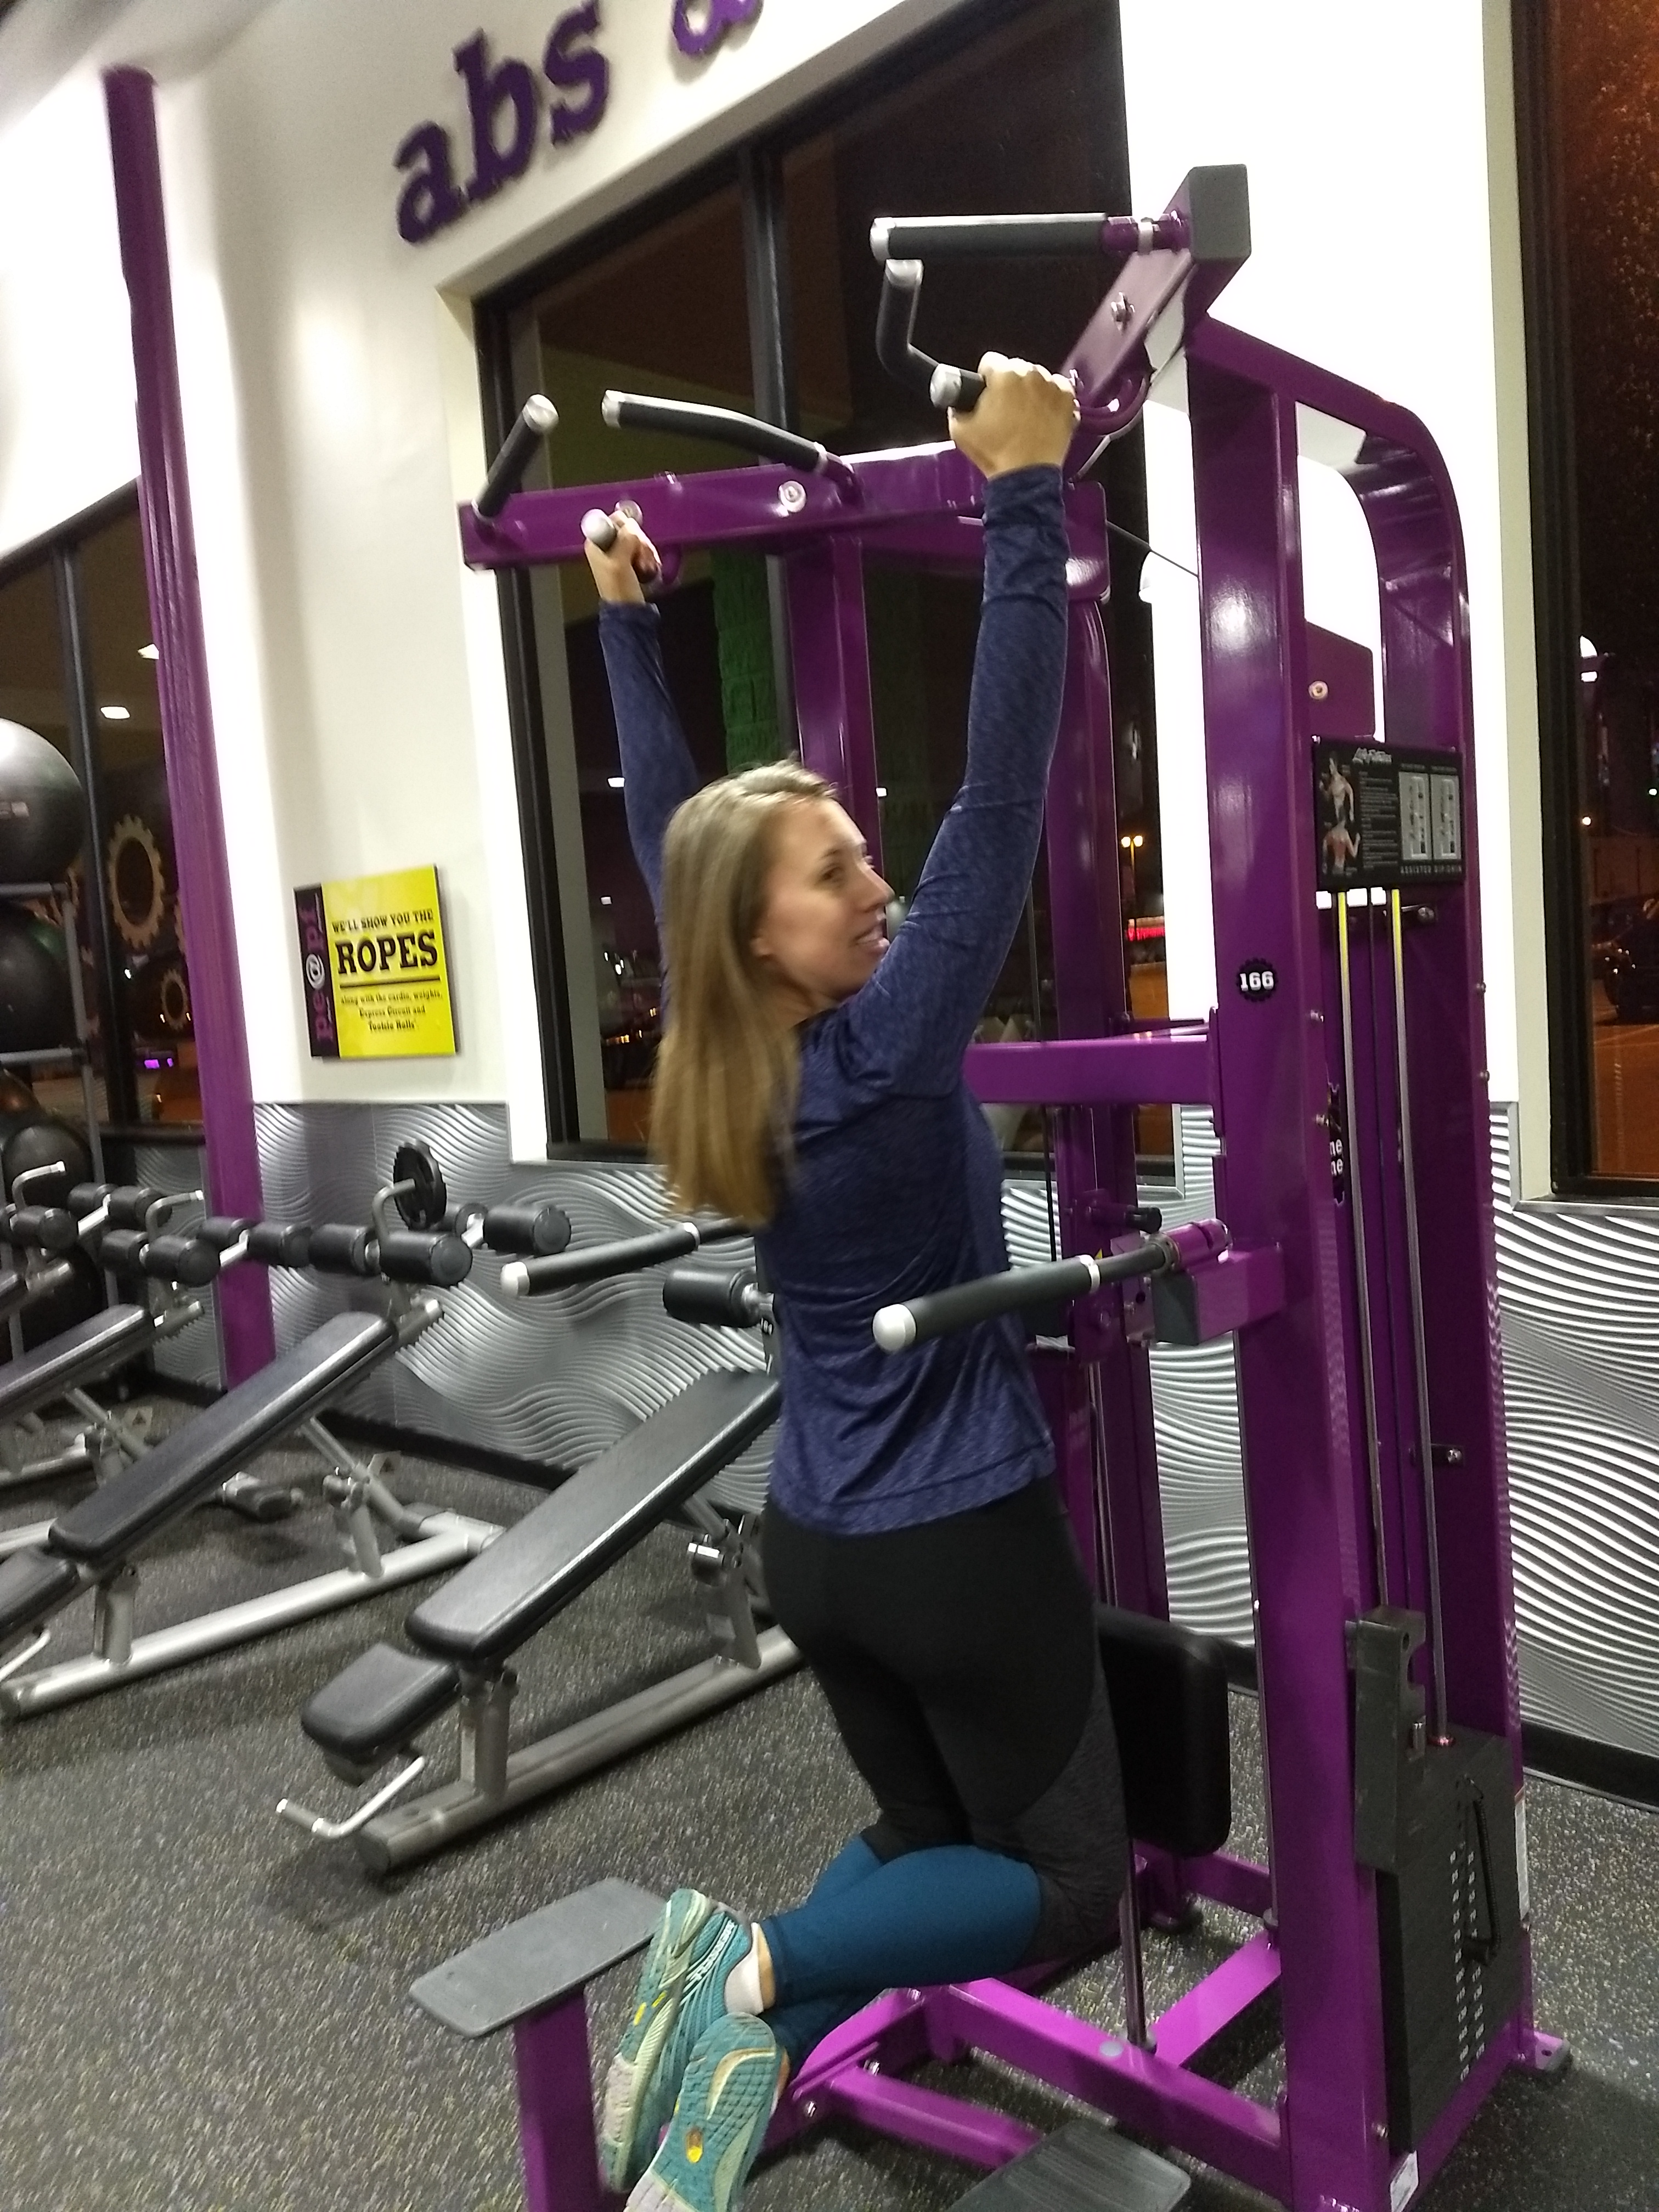 Planet Fitness Clarksville : planet, fitness, clarksville, Planet, Fitness, Hydromassage, Planking, Traveler